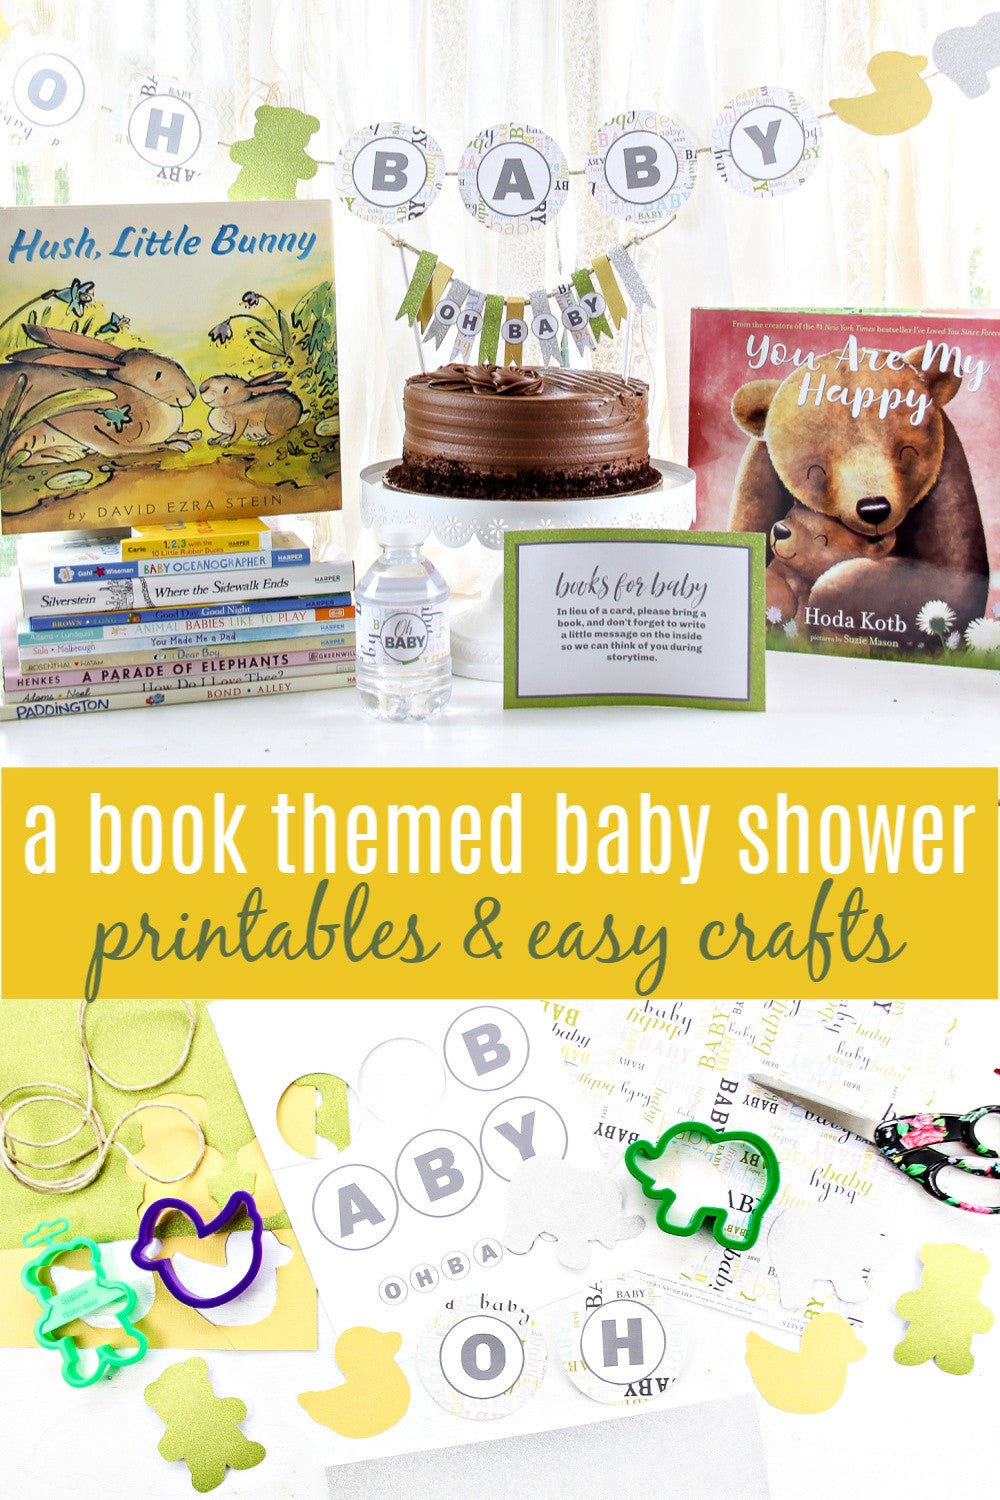 A book-themed baby shower printables & easy crafts